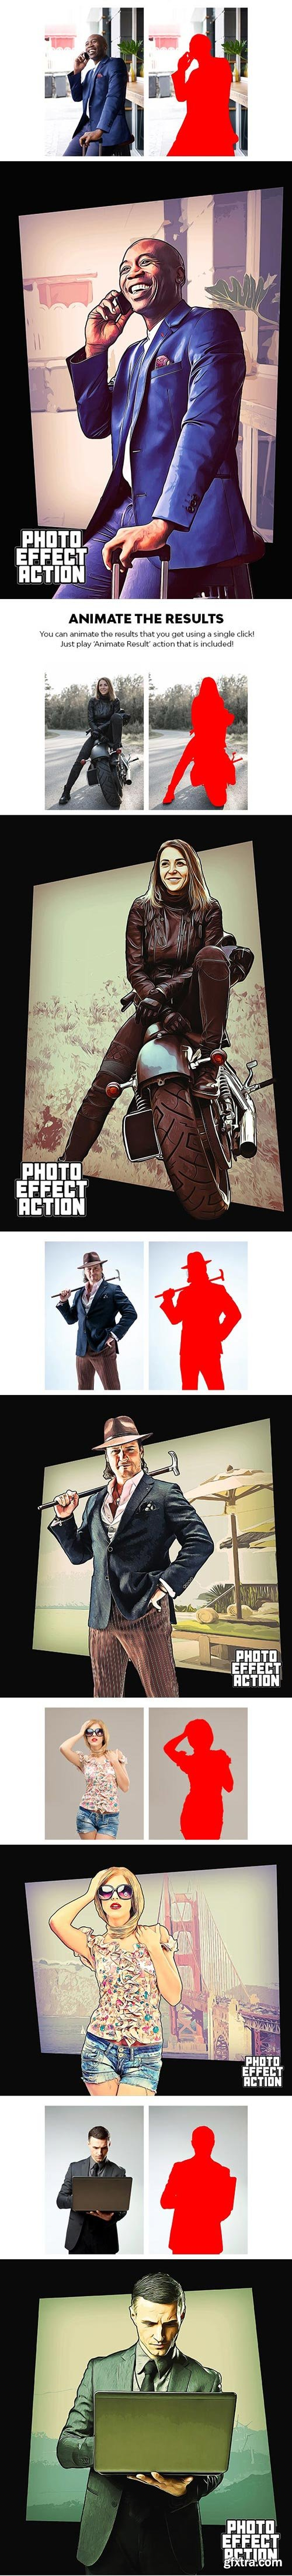 GraphicRiver - Grandiose 3 Animated Photoshop Action - 21685705